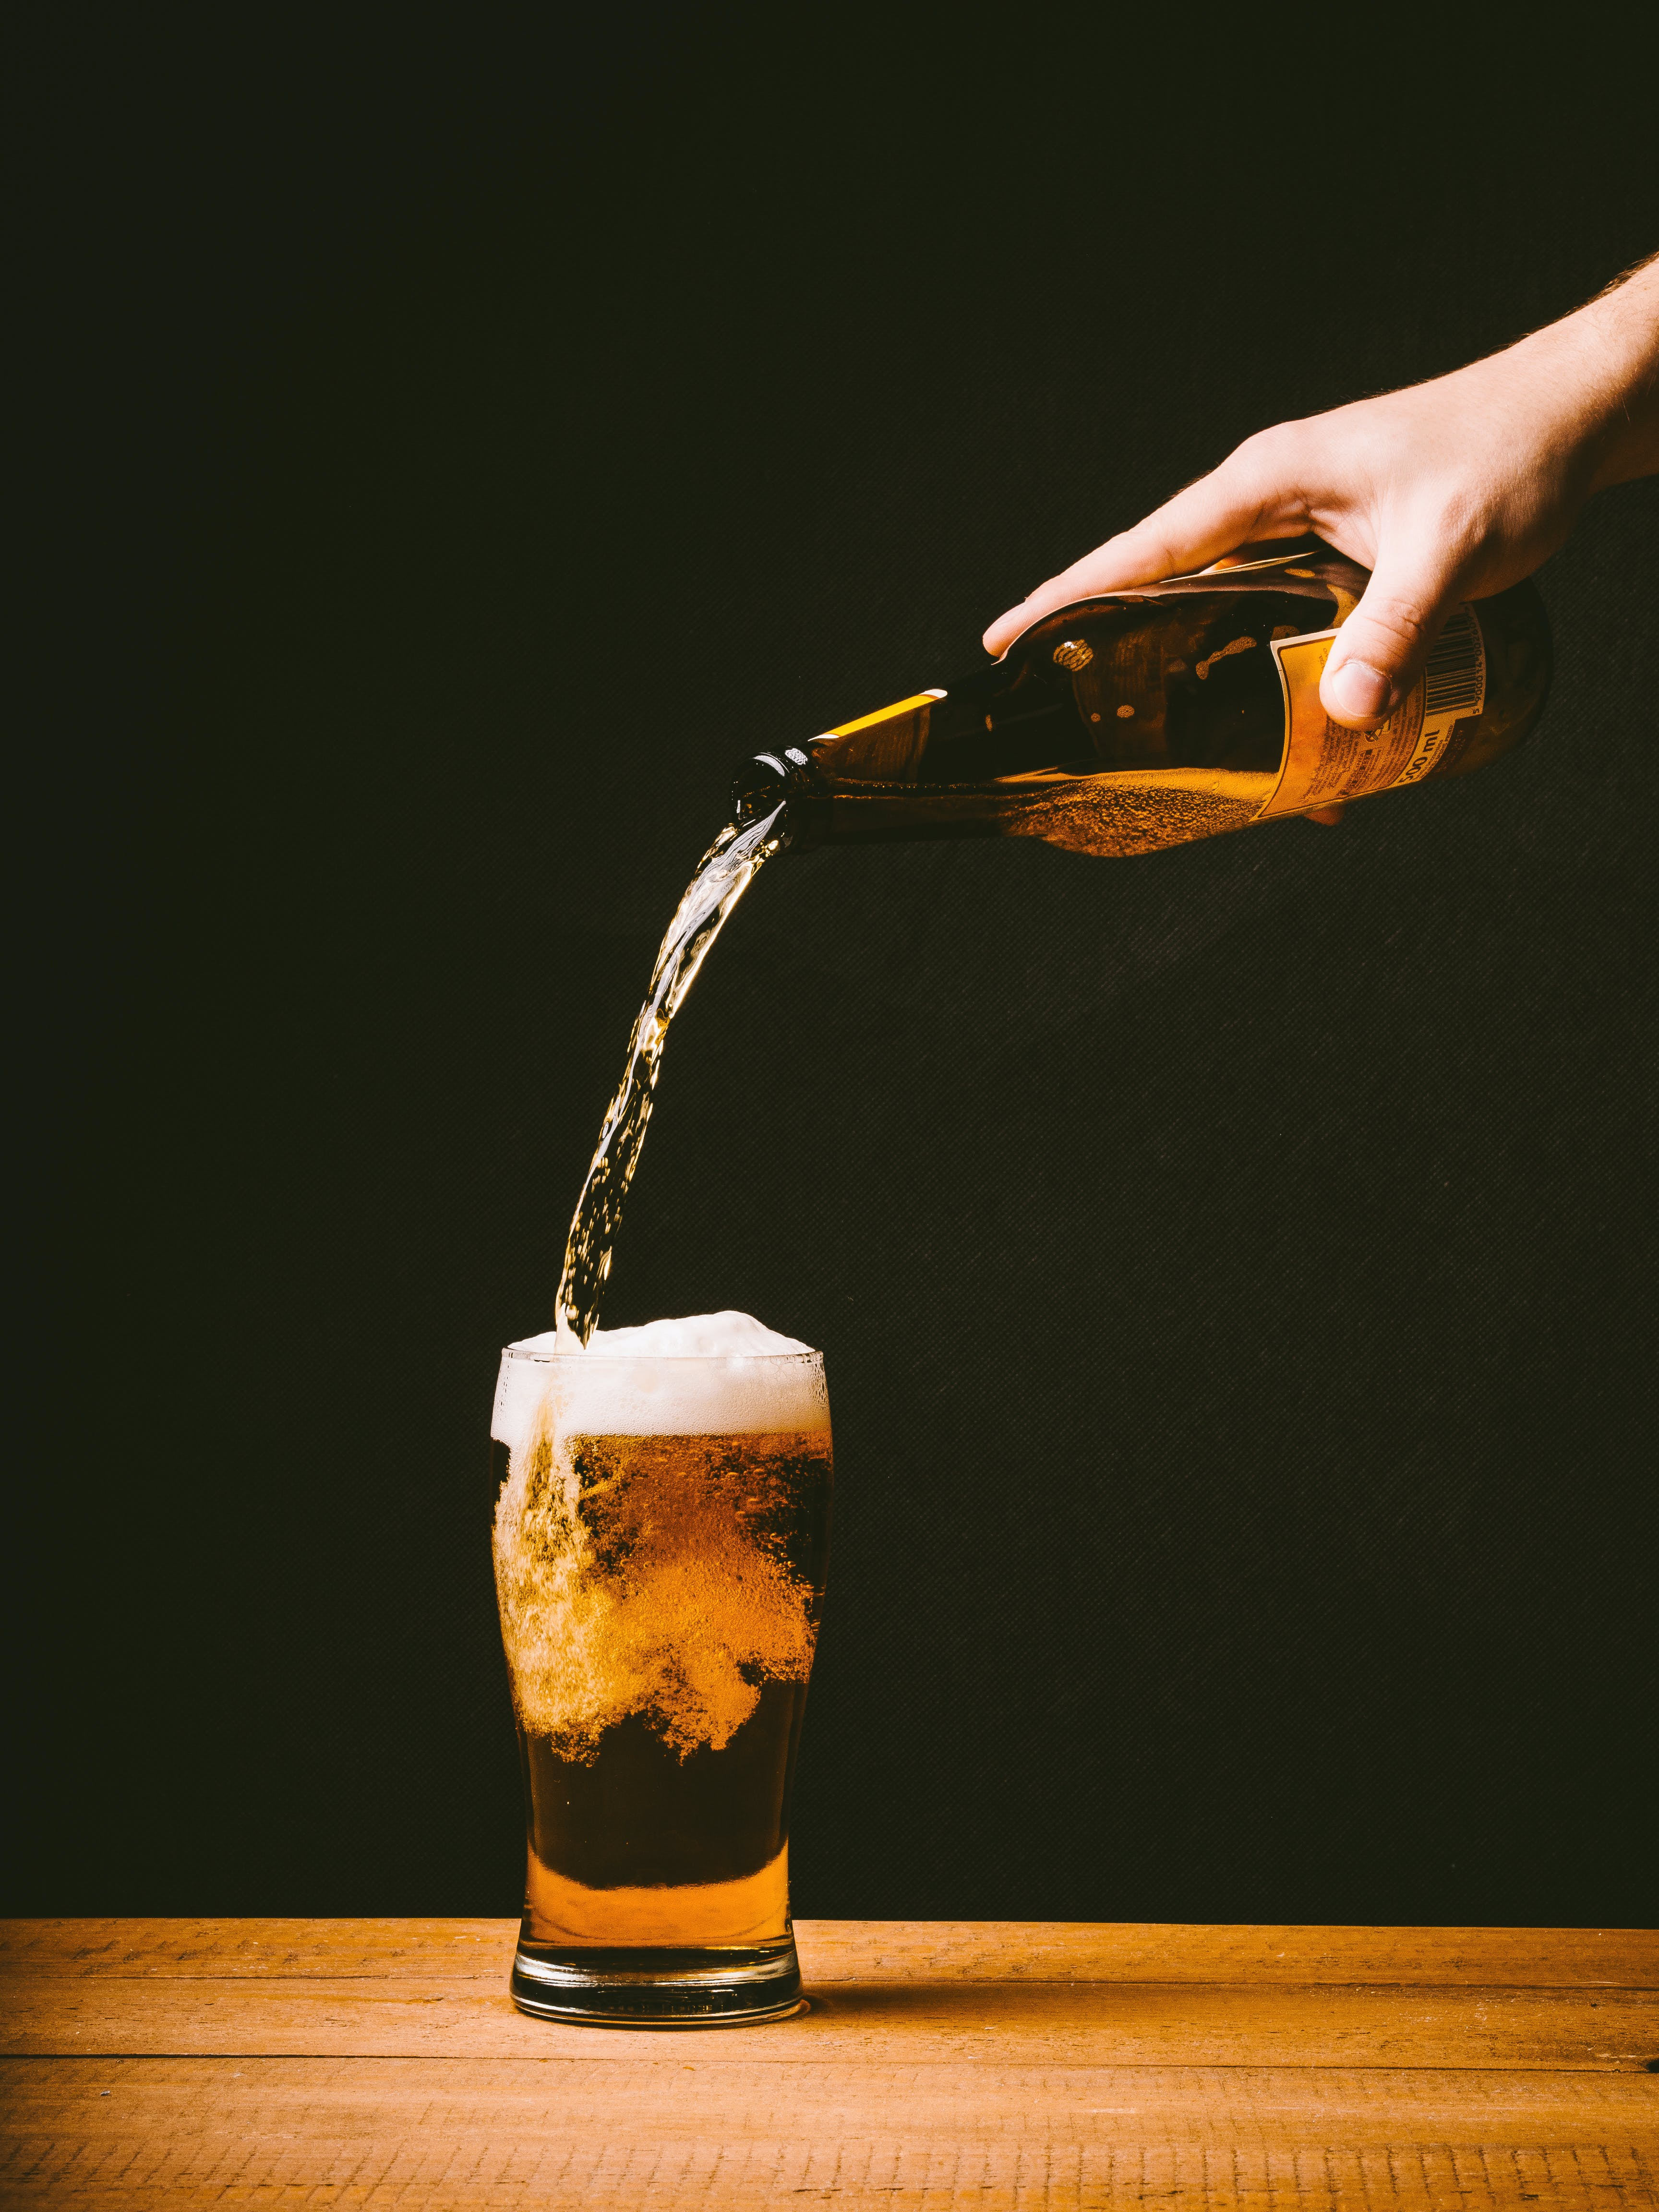 Person Pouring Yellow Liquid on Pilsner Glass Placed on Table